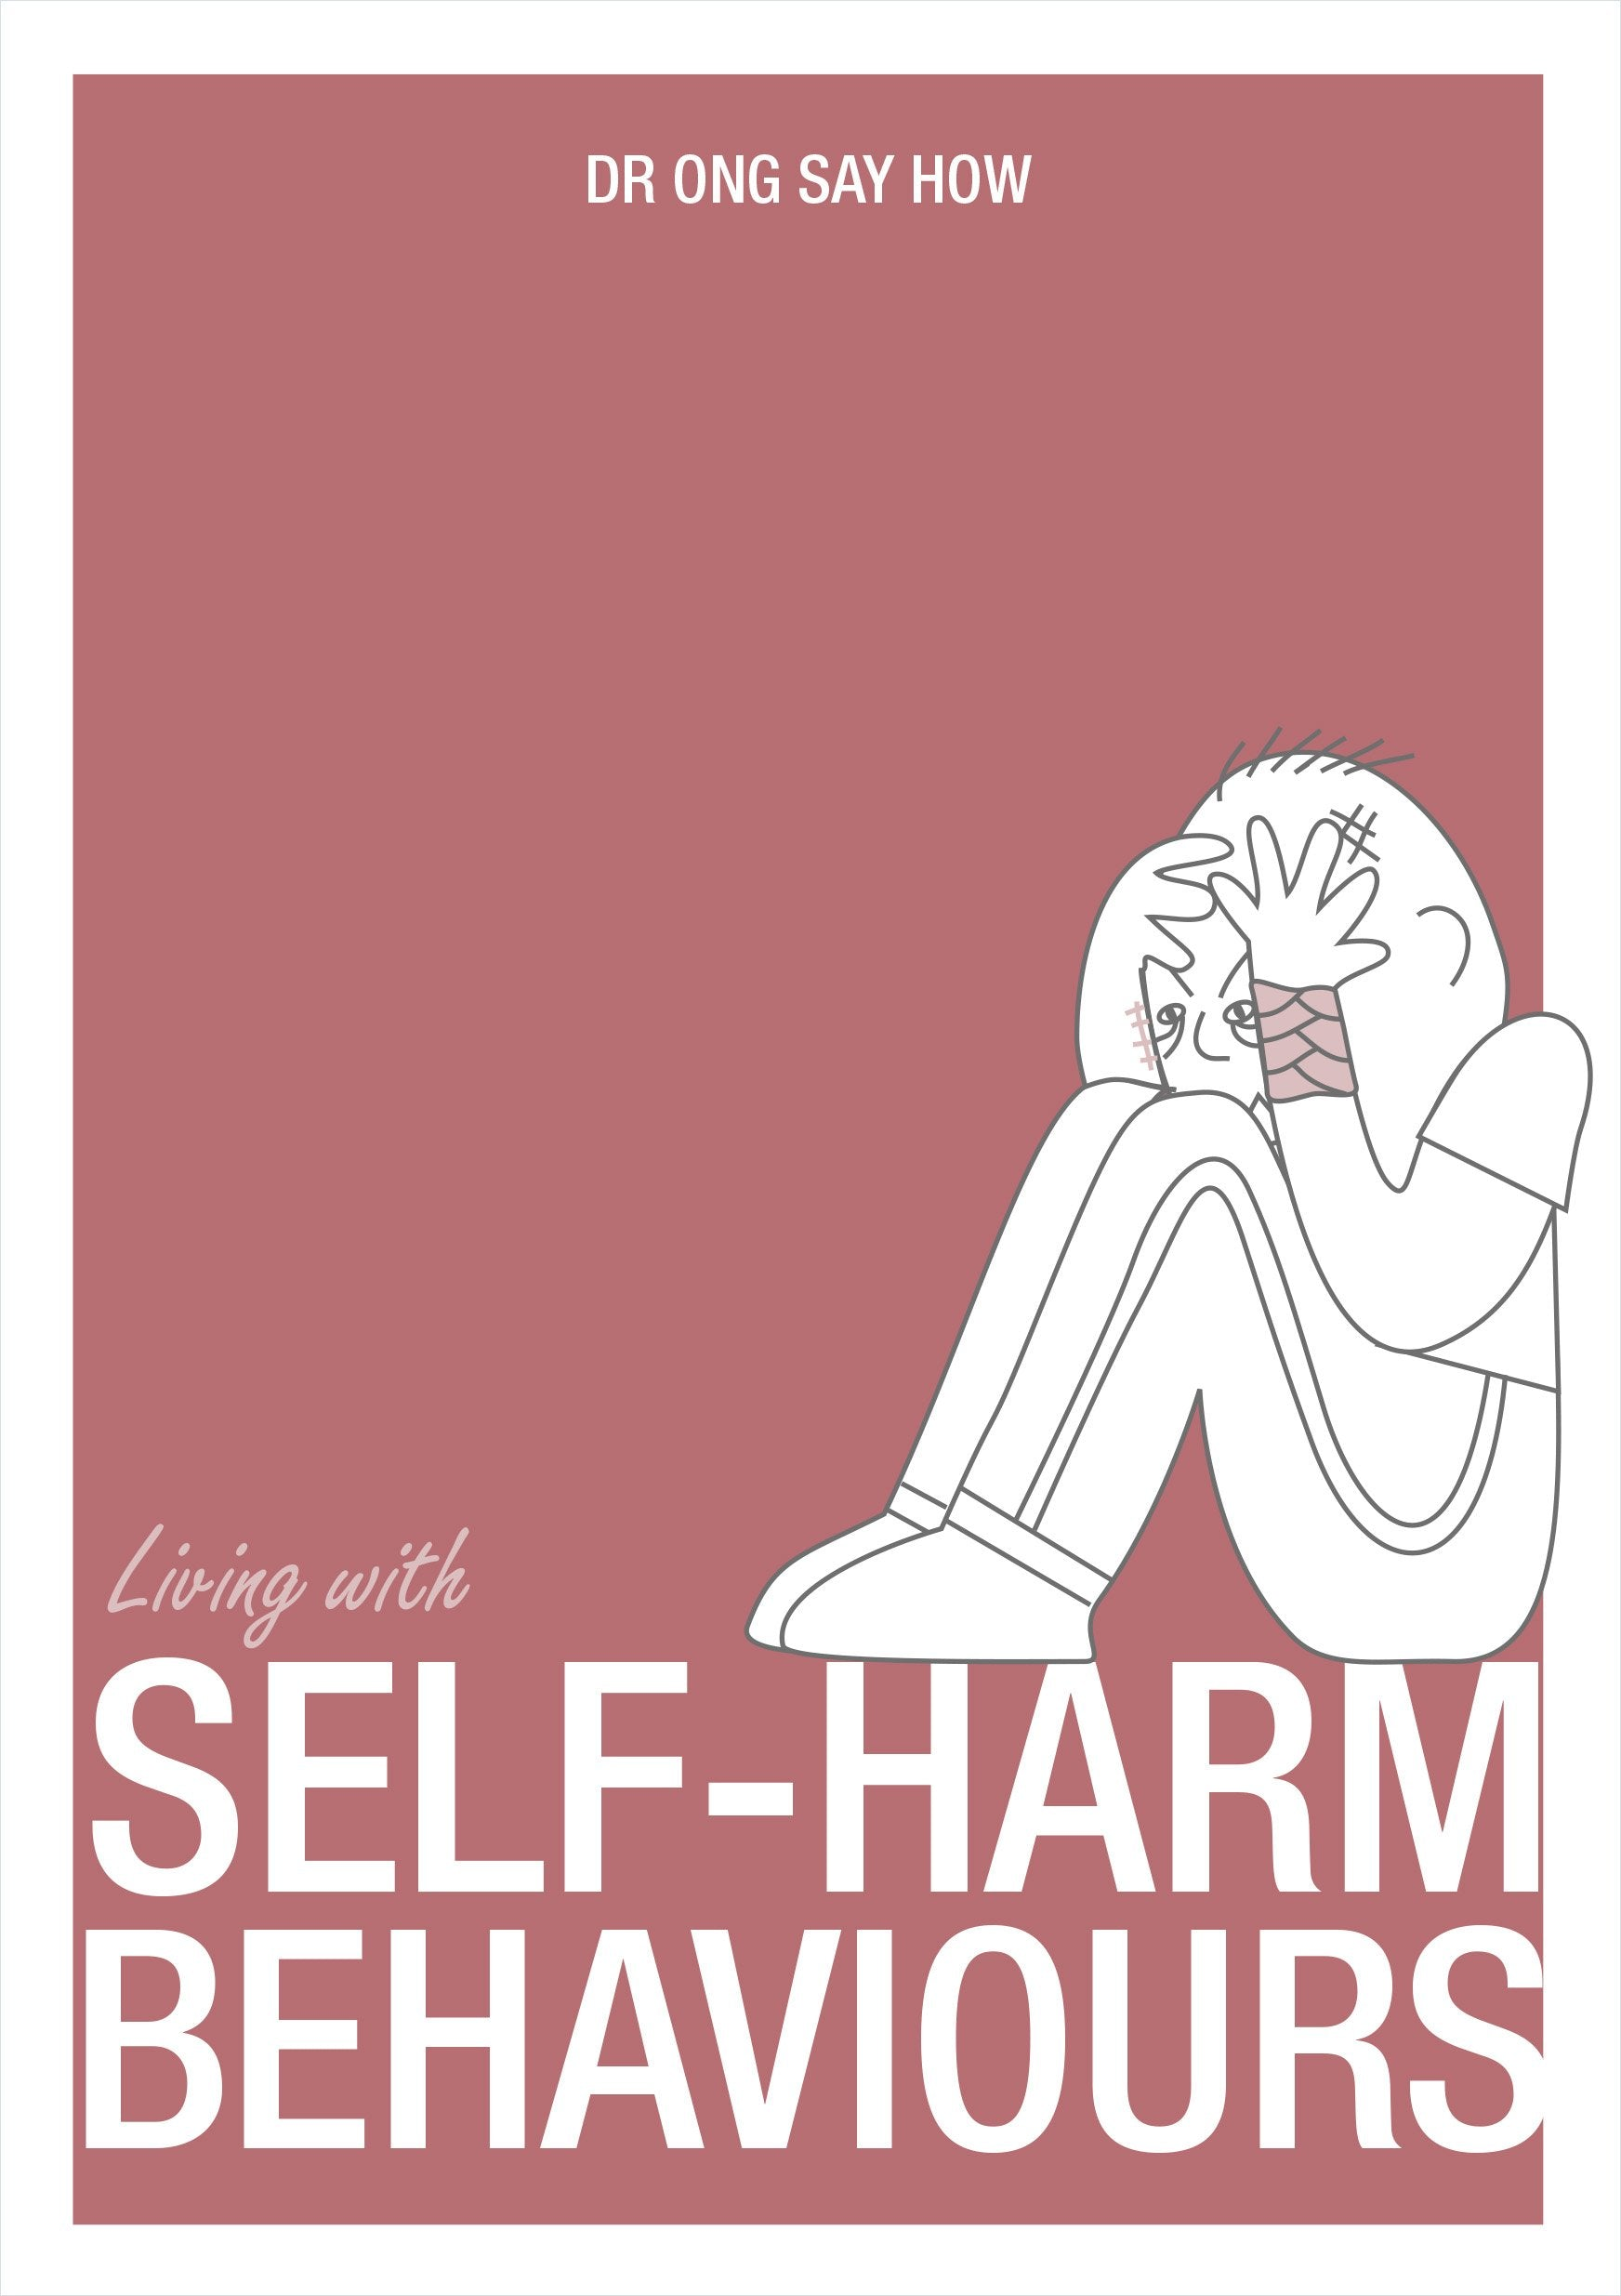 Living With: Self-harm Behaviours